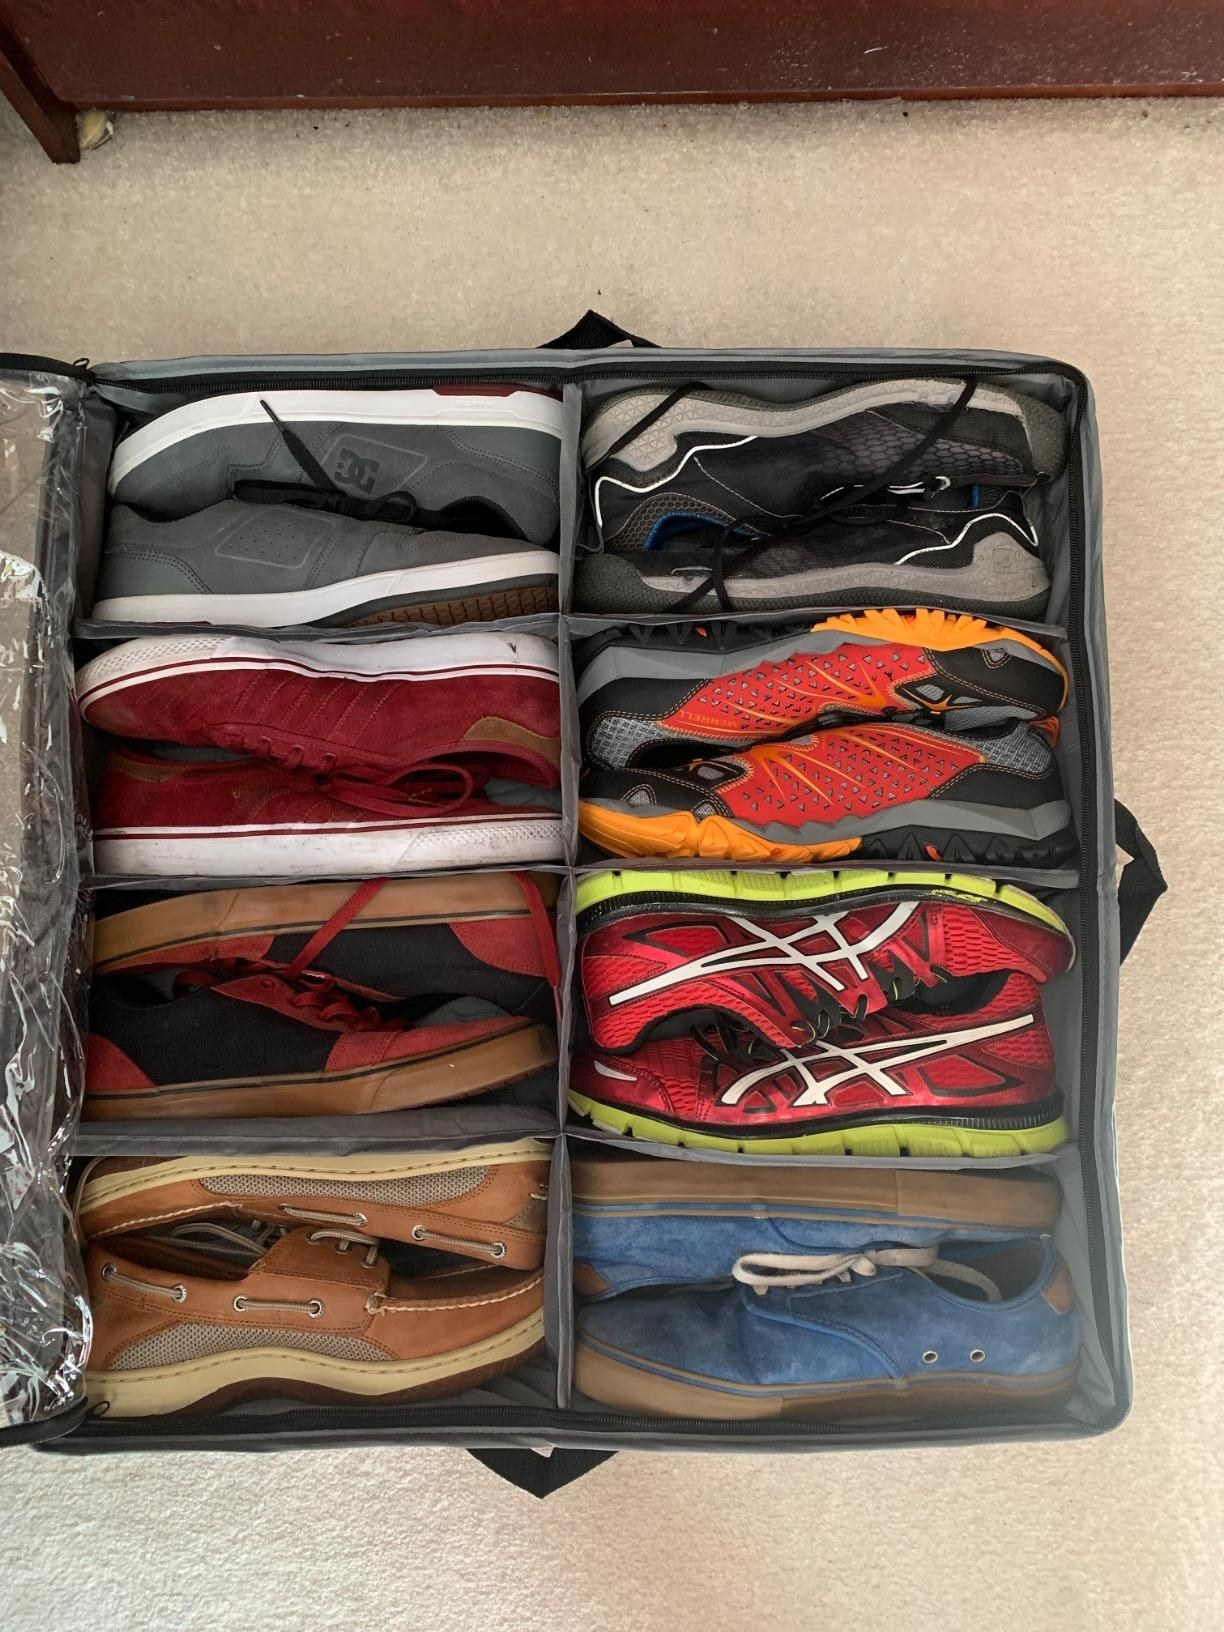 A shoe bag holding eight pairs of shoes